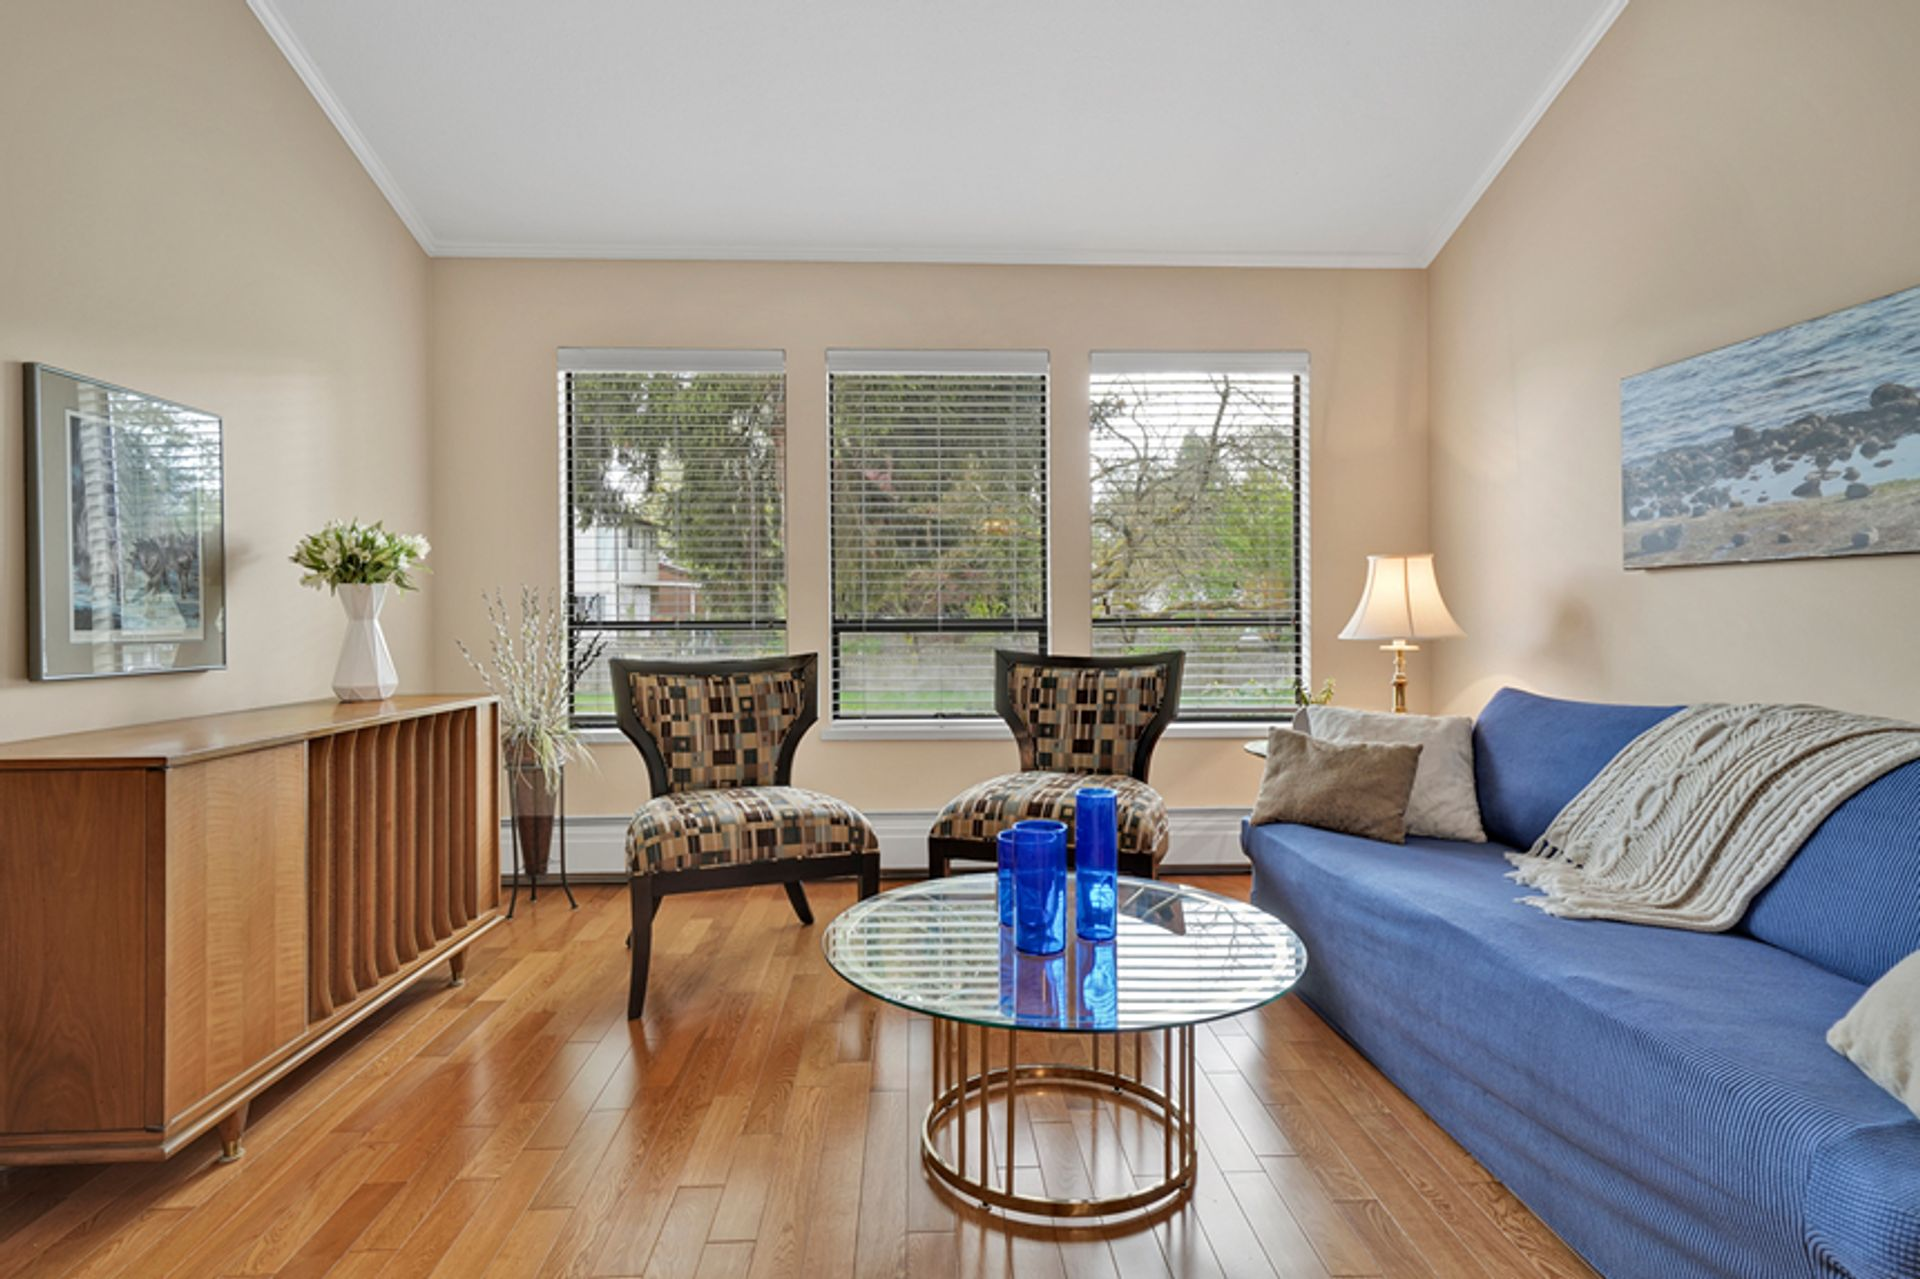 2a-main-living-room-12 at 836 Irvine Street, Meadow Brook, Coquitlam